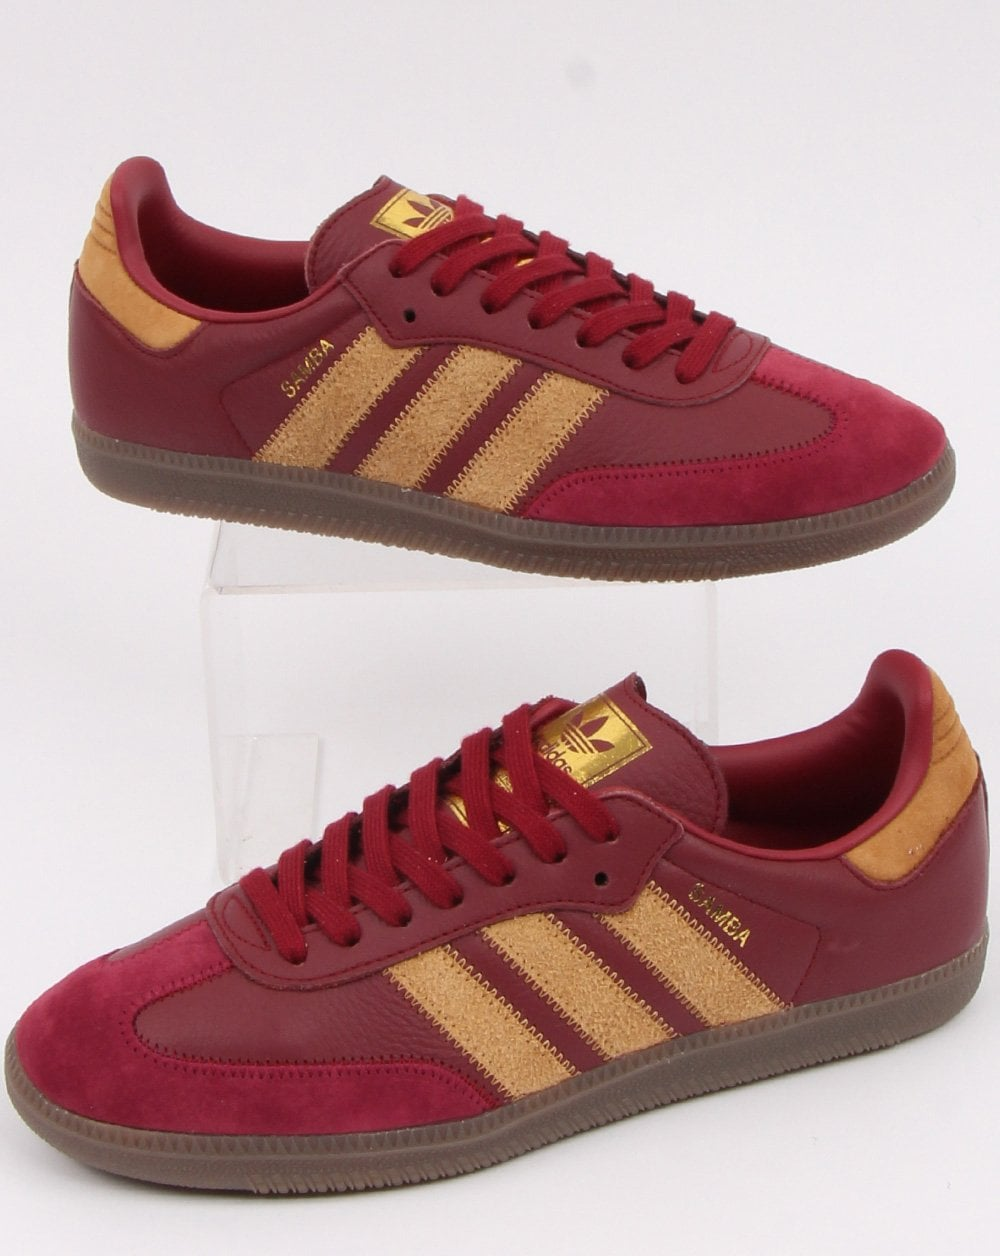 new high quality hot products detailing Adidas Samba Og Ft Trainers Burgundy/Gold